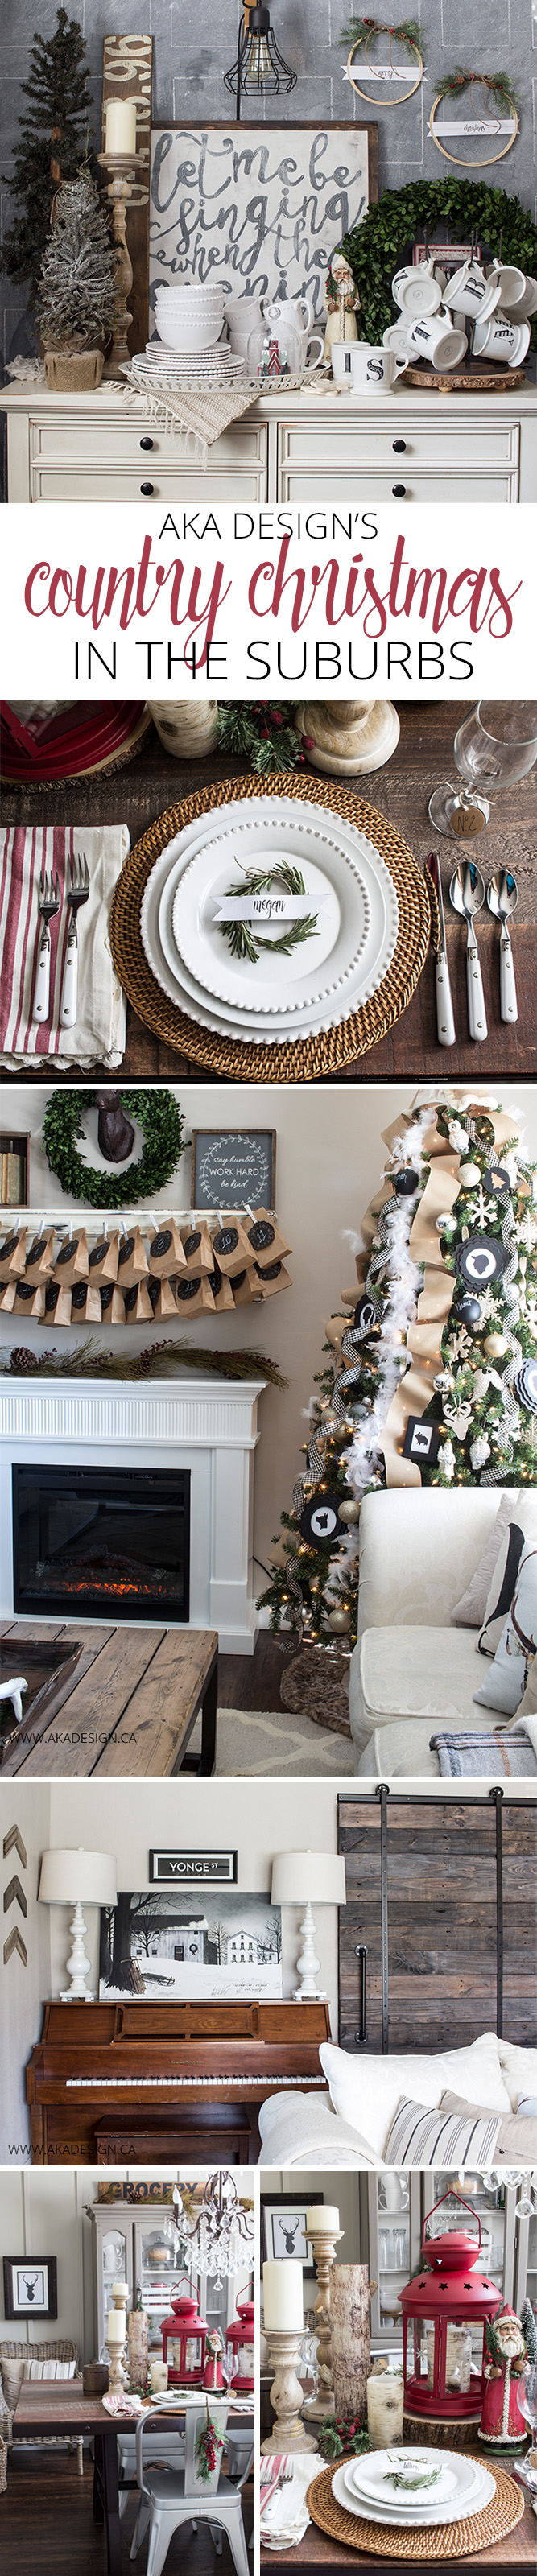 AKA Design Country Christmas Home Tour